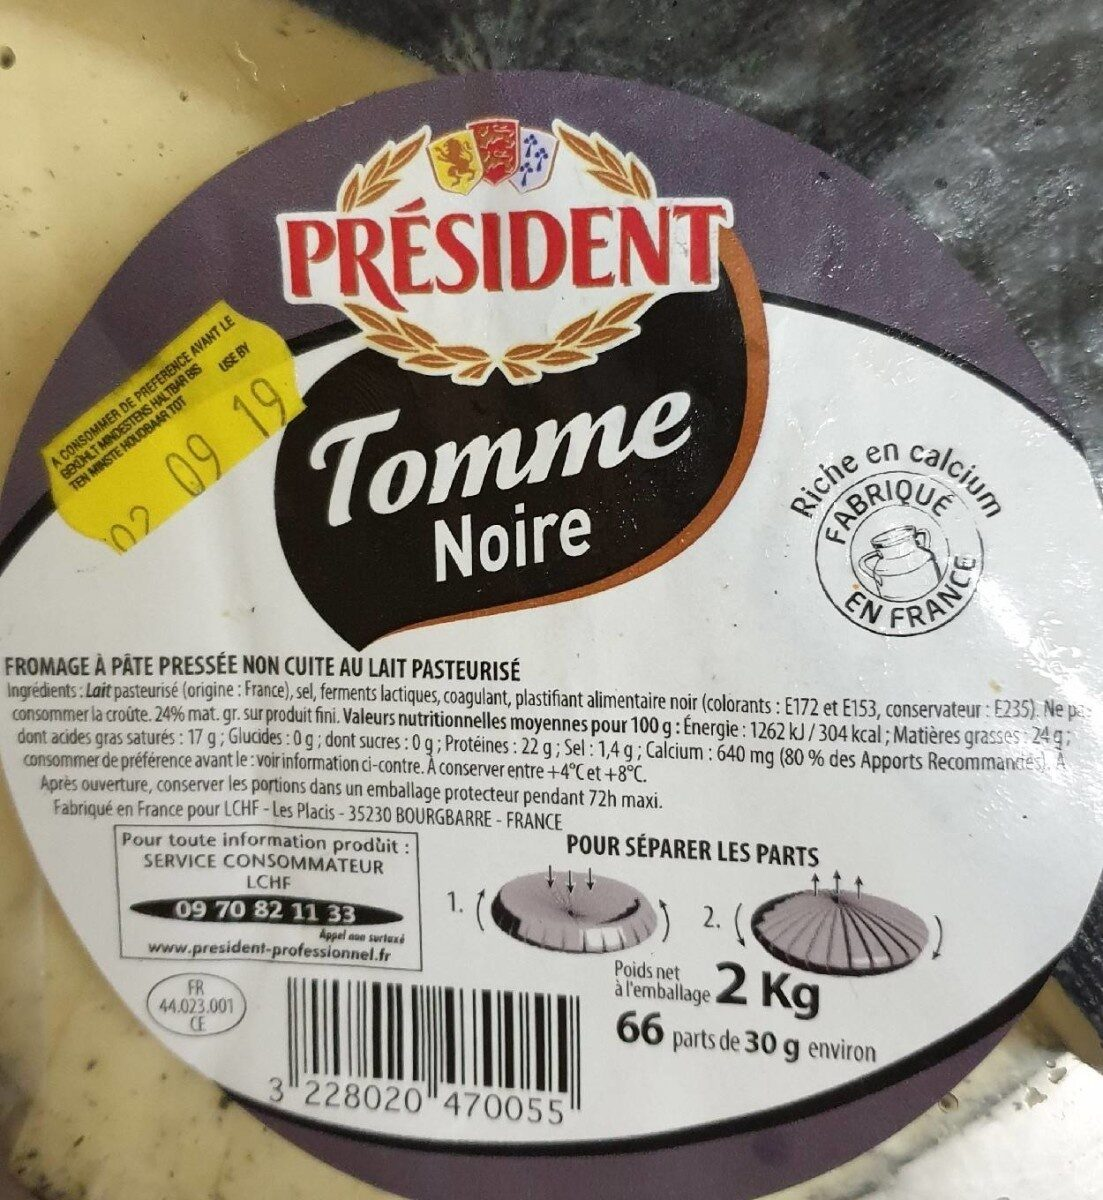 Tomme Noire - 192 MG Calcium 24 % - Nutrition facts